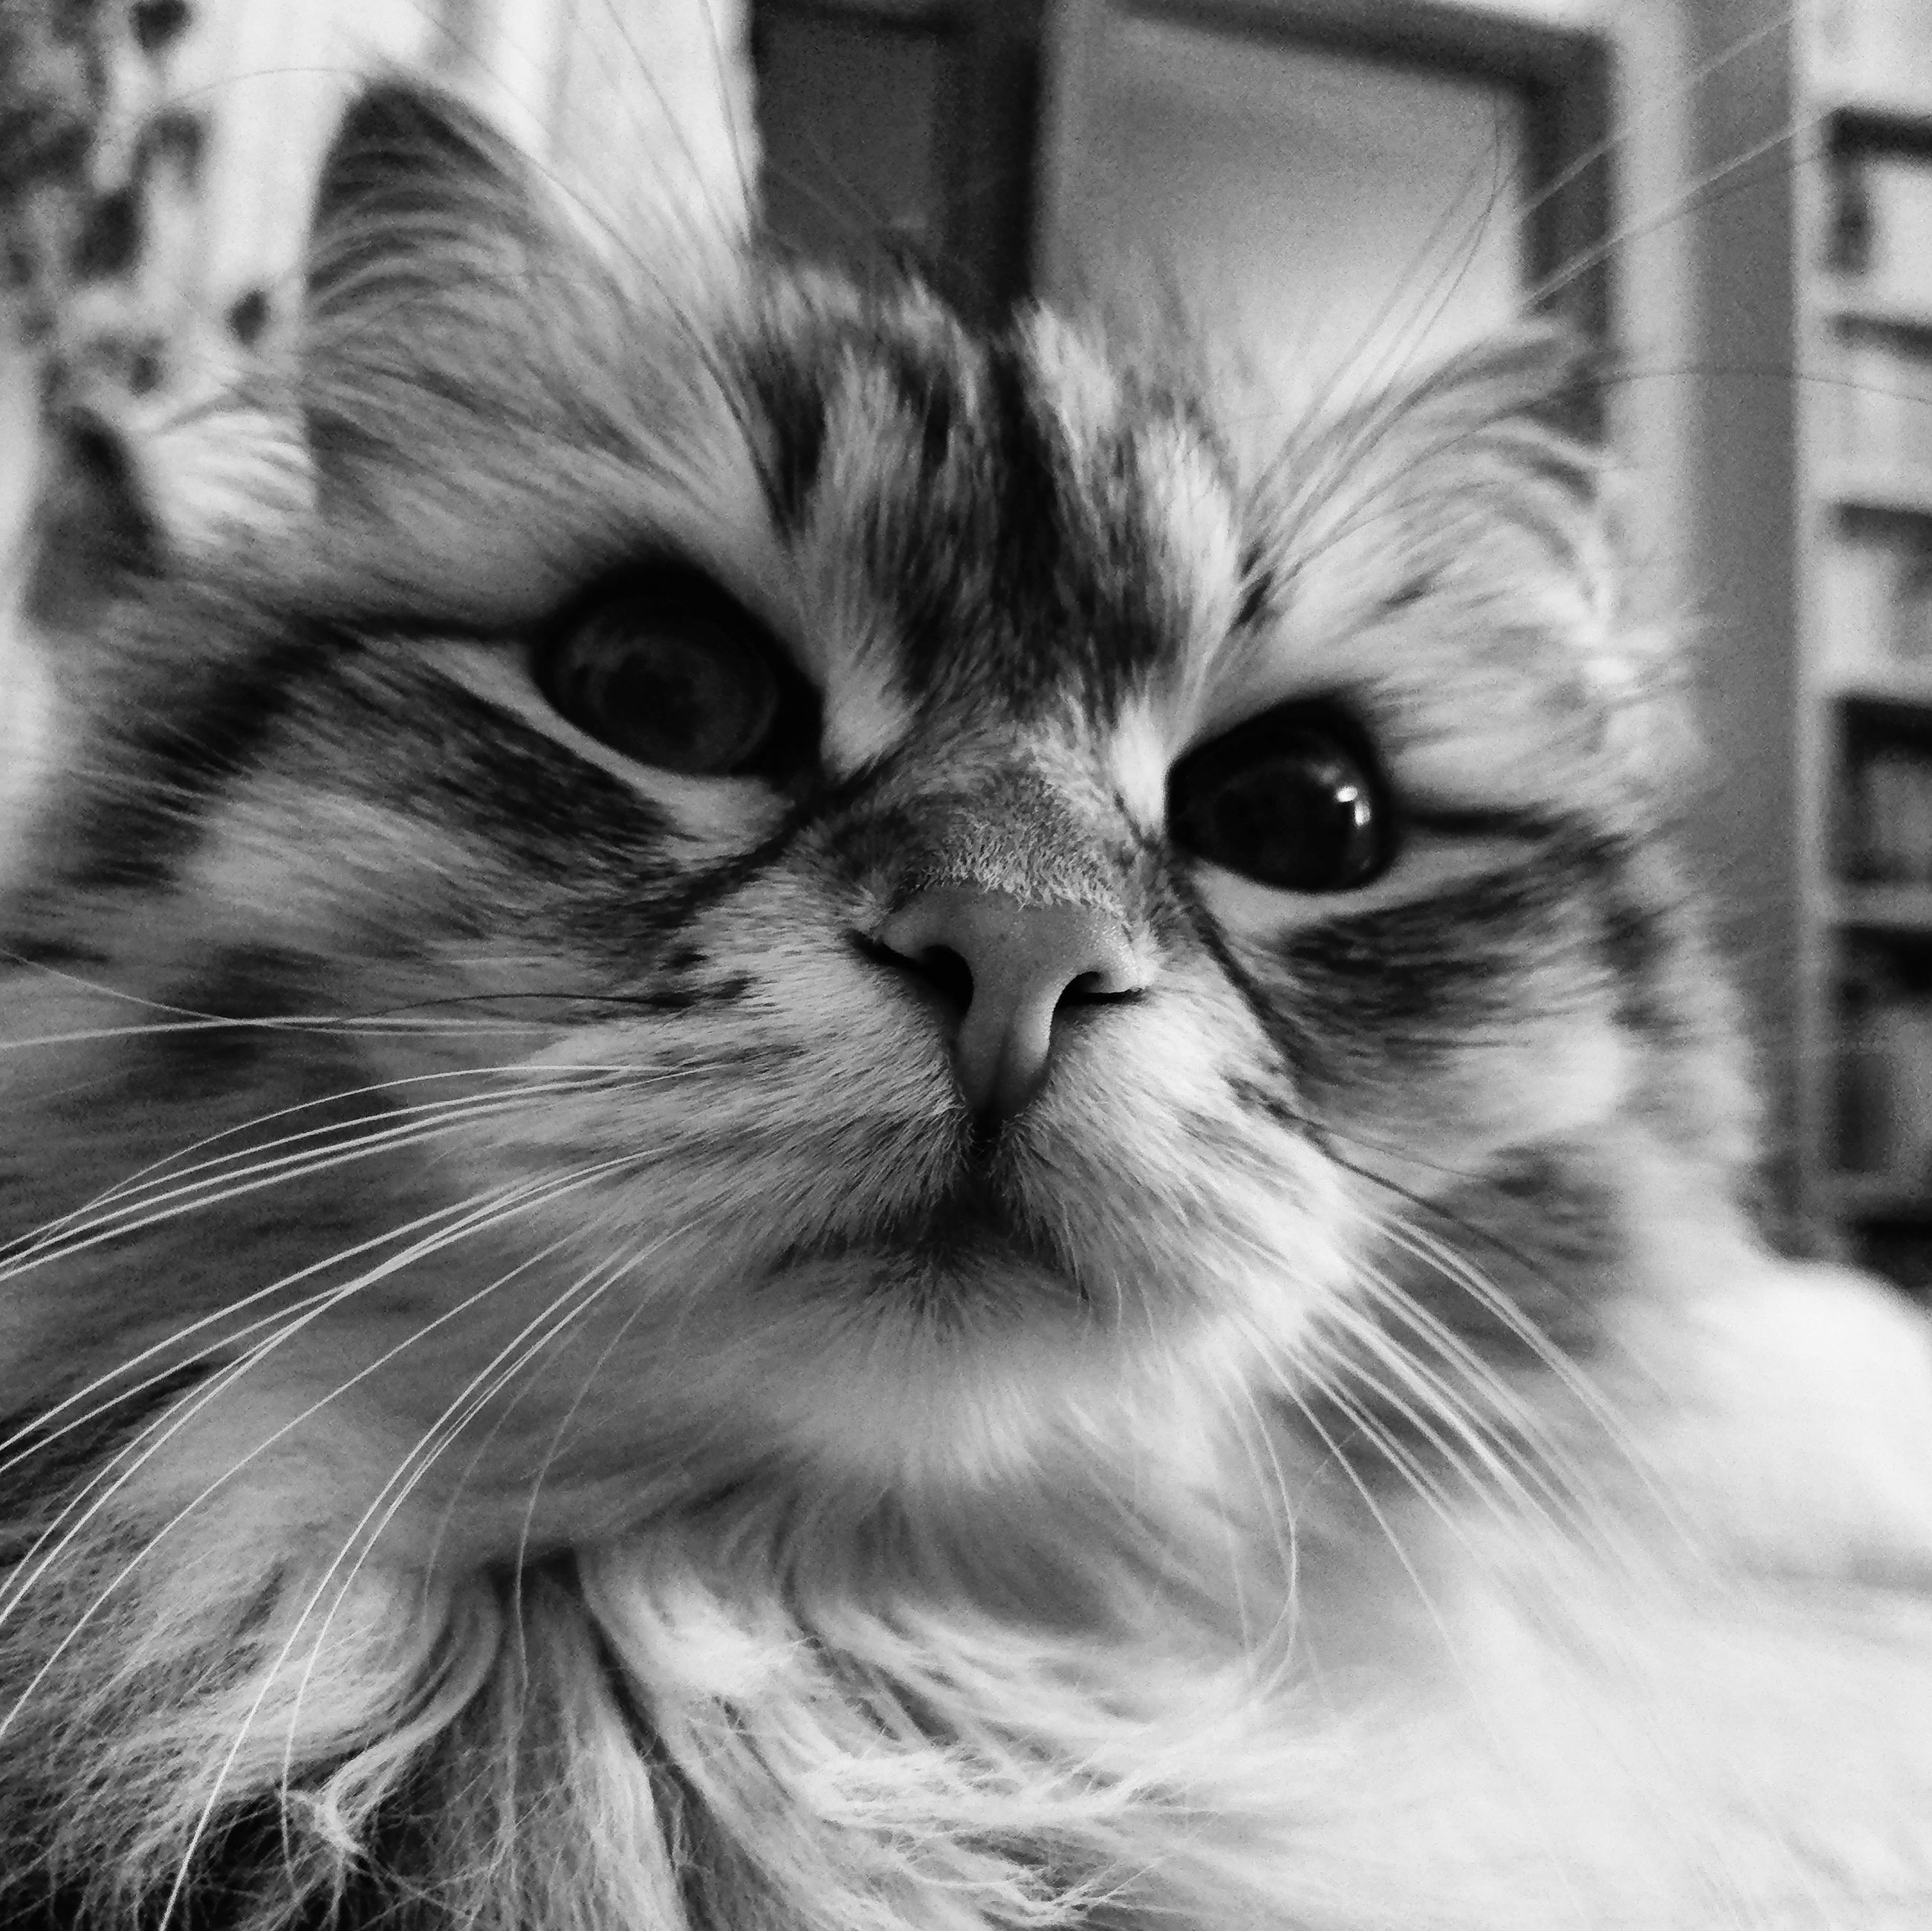 domestic cat, pets, domestic animals, animal themes, whisker, one animal, feline, mammal, close-up, looking at camera, no people, portrait, indoors, persian cat, day